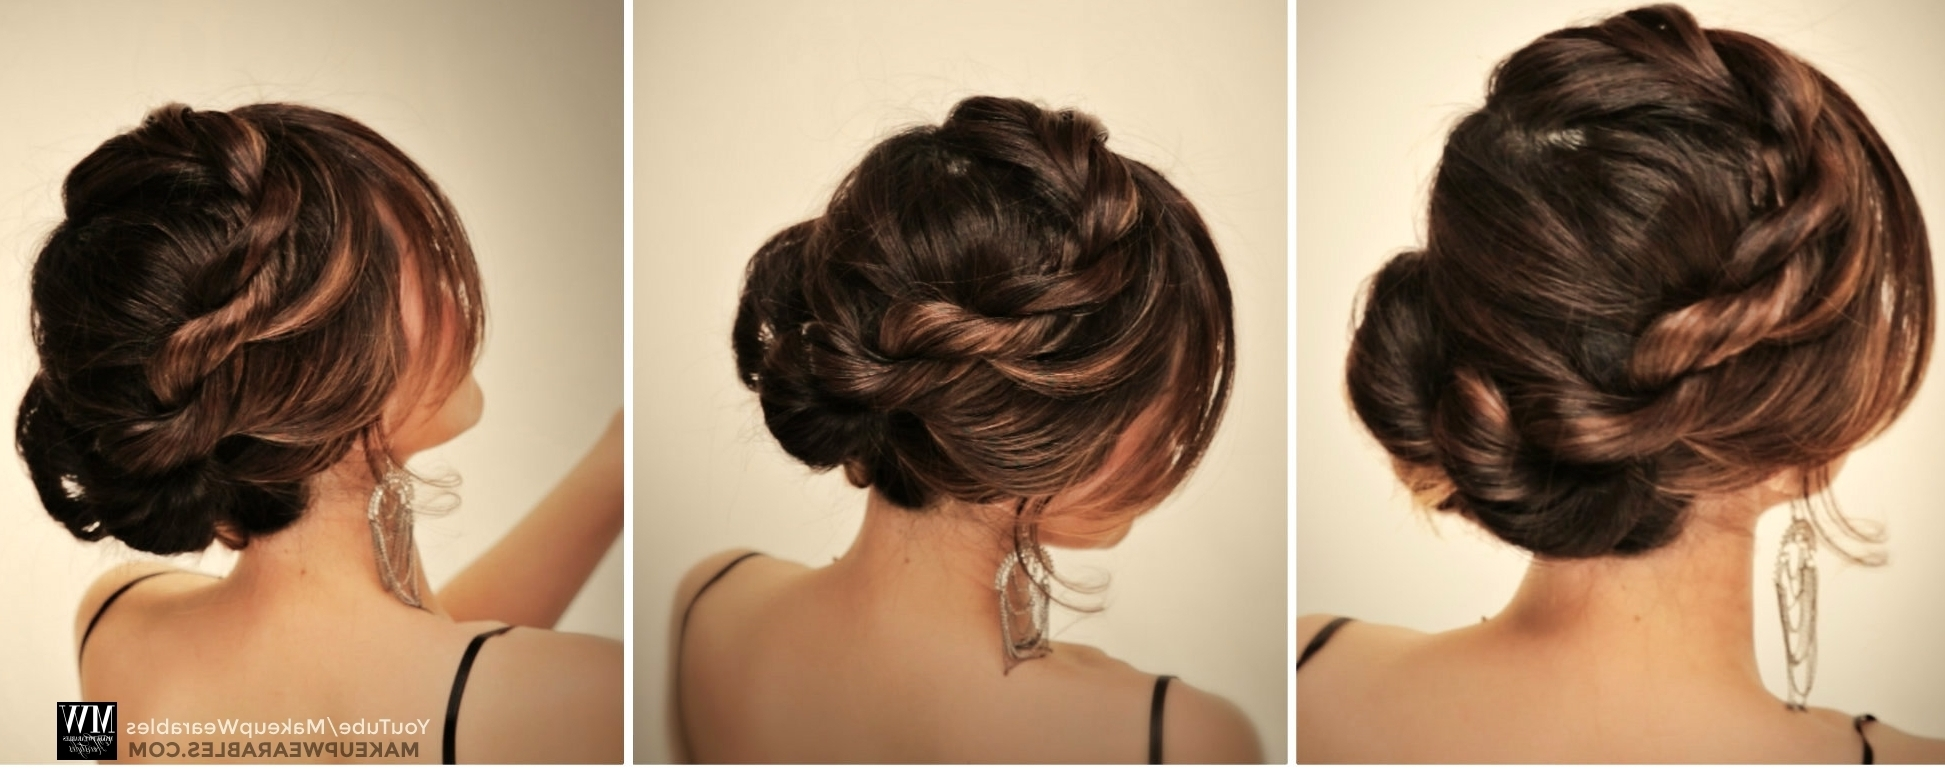 How To: 5 Amazingly Cute + Easy Hairstyles With A Simple Twist With Cute Bun Updo Hairstyles (View 10 of 15)